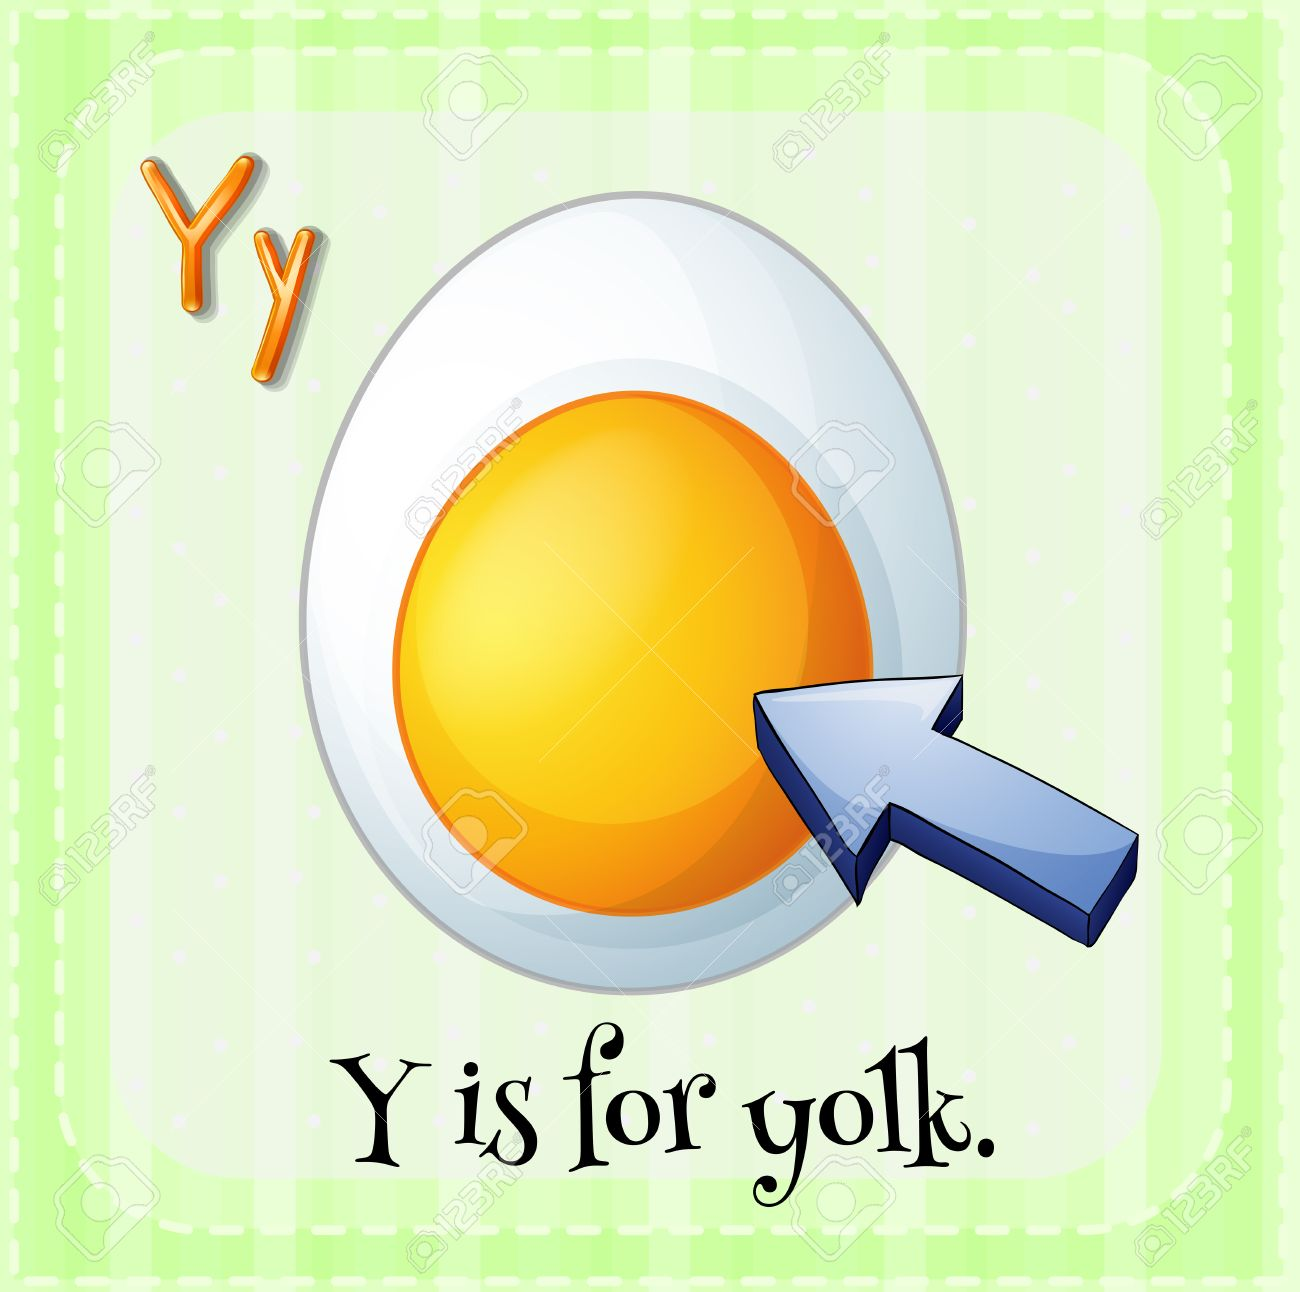 Illustration Of A Letter Y Is For Yolk Royalty Free Cliparts ... for Clipart Yolk  113cpg